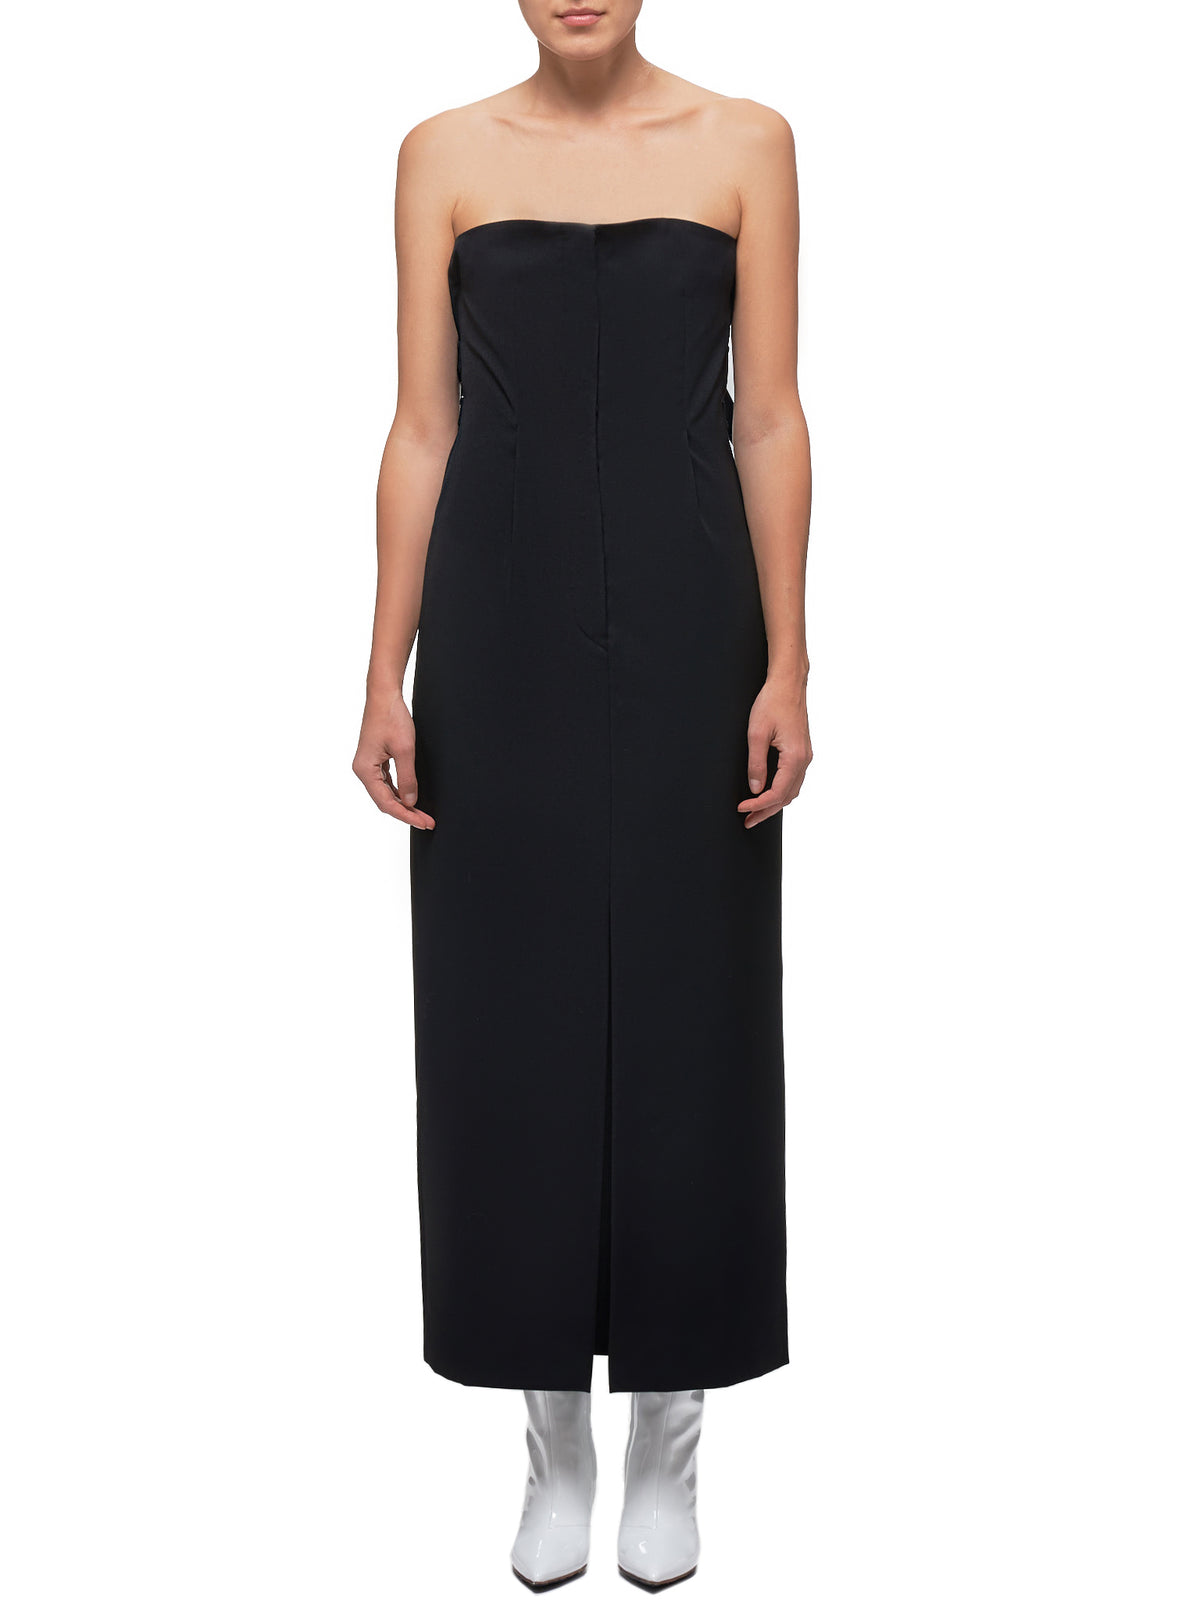 Acne Studios Dress - Hlorenzo Front